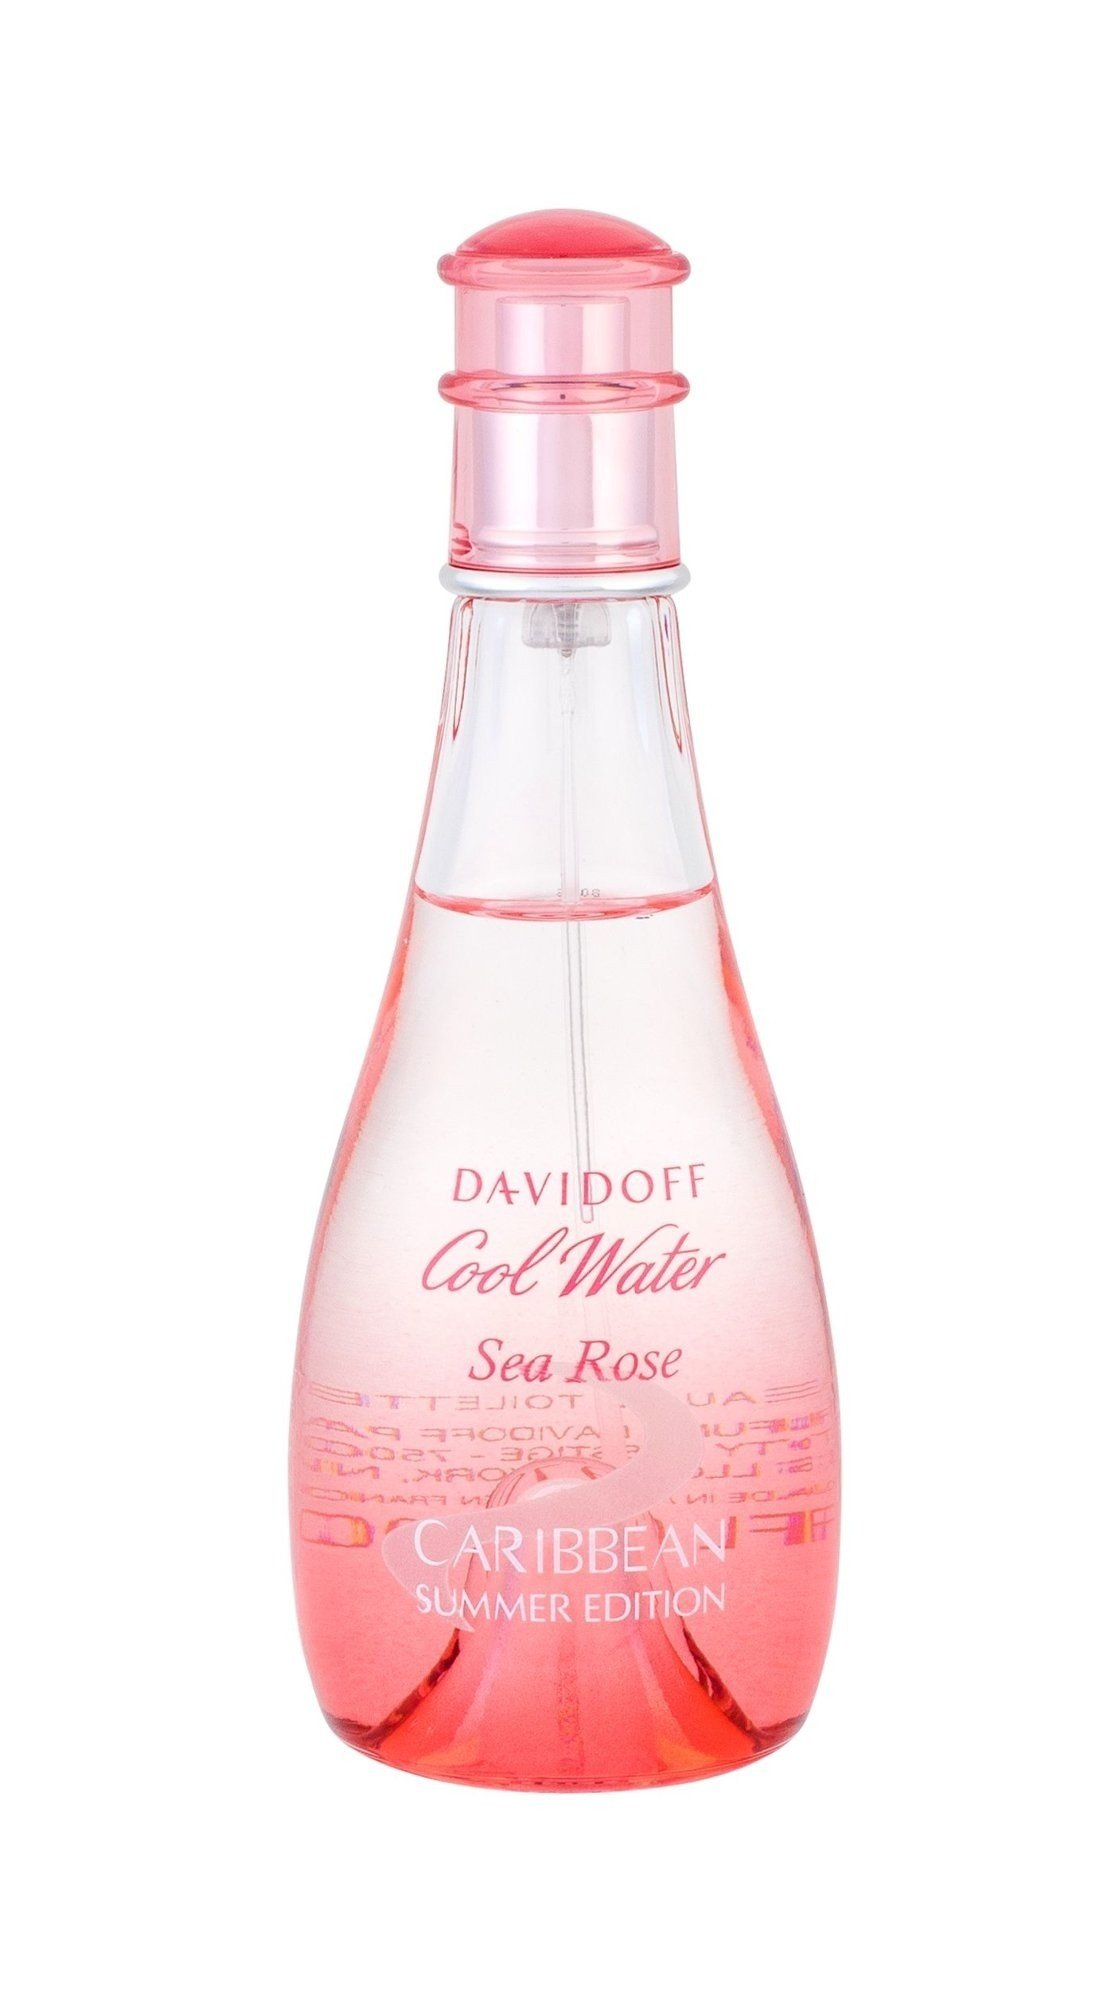 Davidoff - Cool Water Woman Sea Rose Caribbean Summer Edition 2018 EDT 100 ml